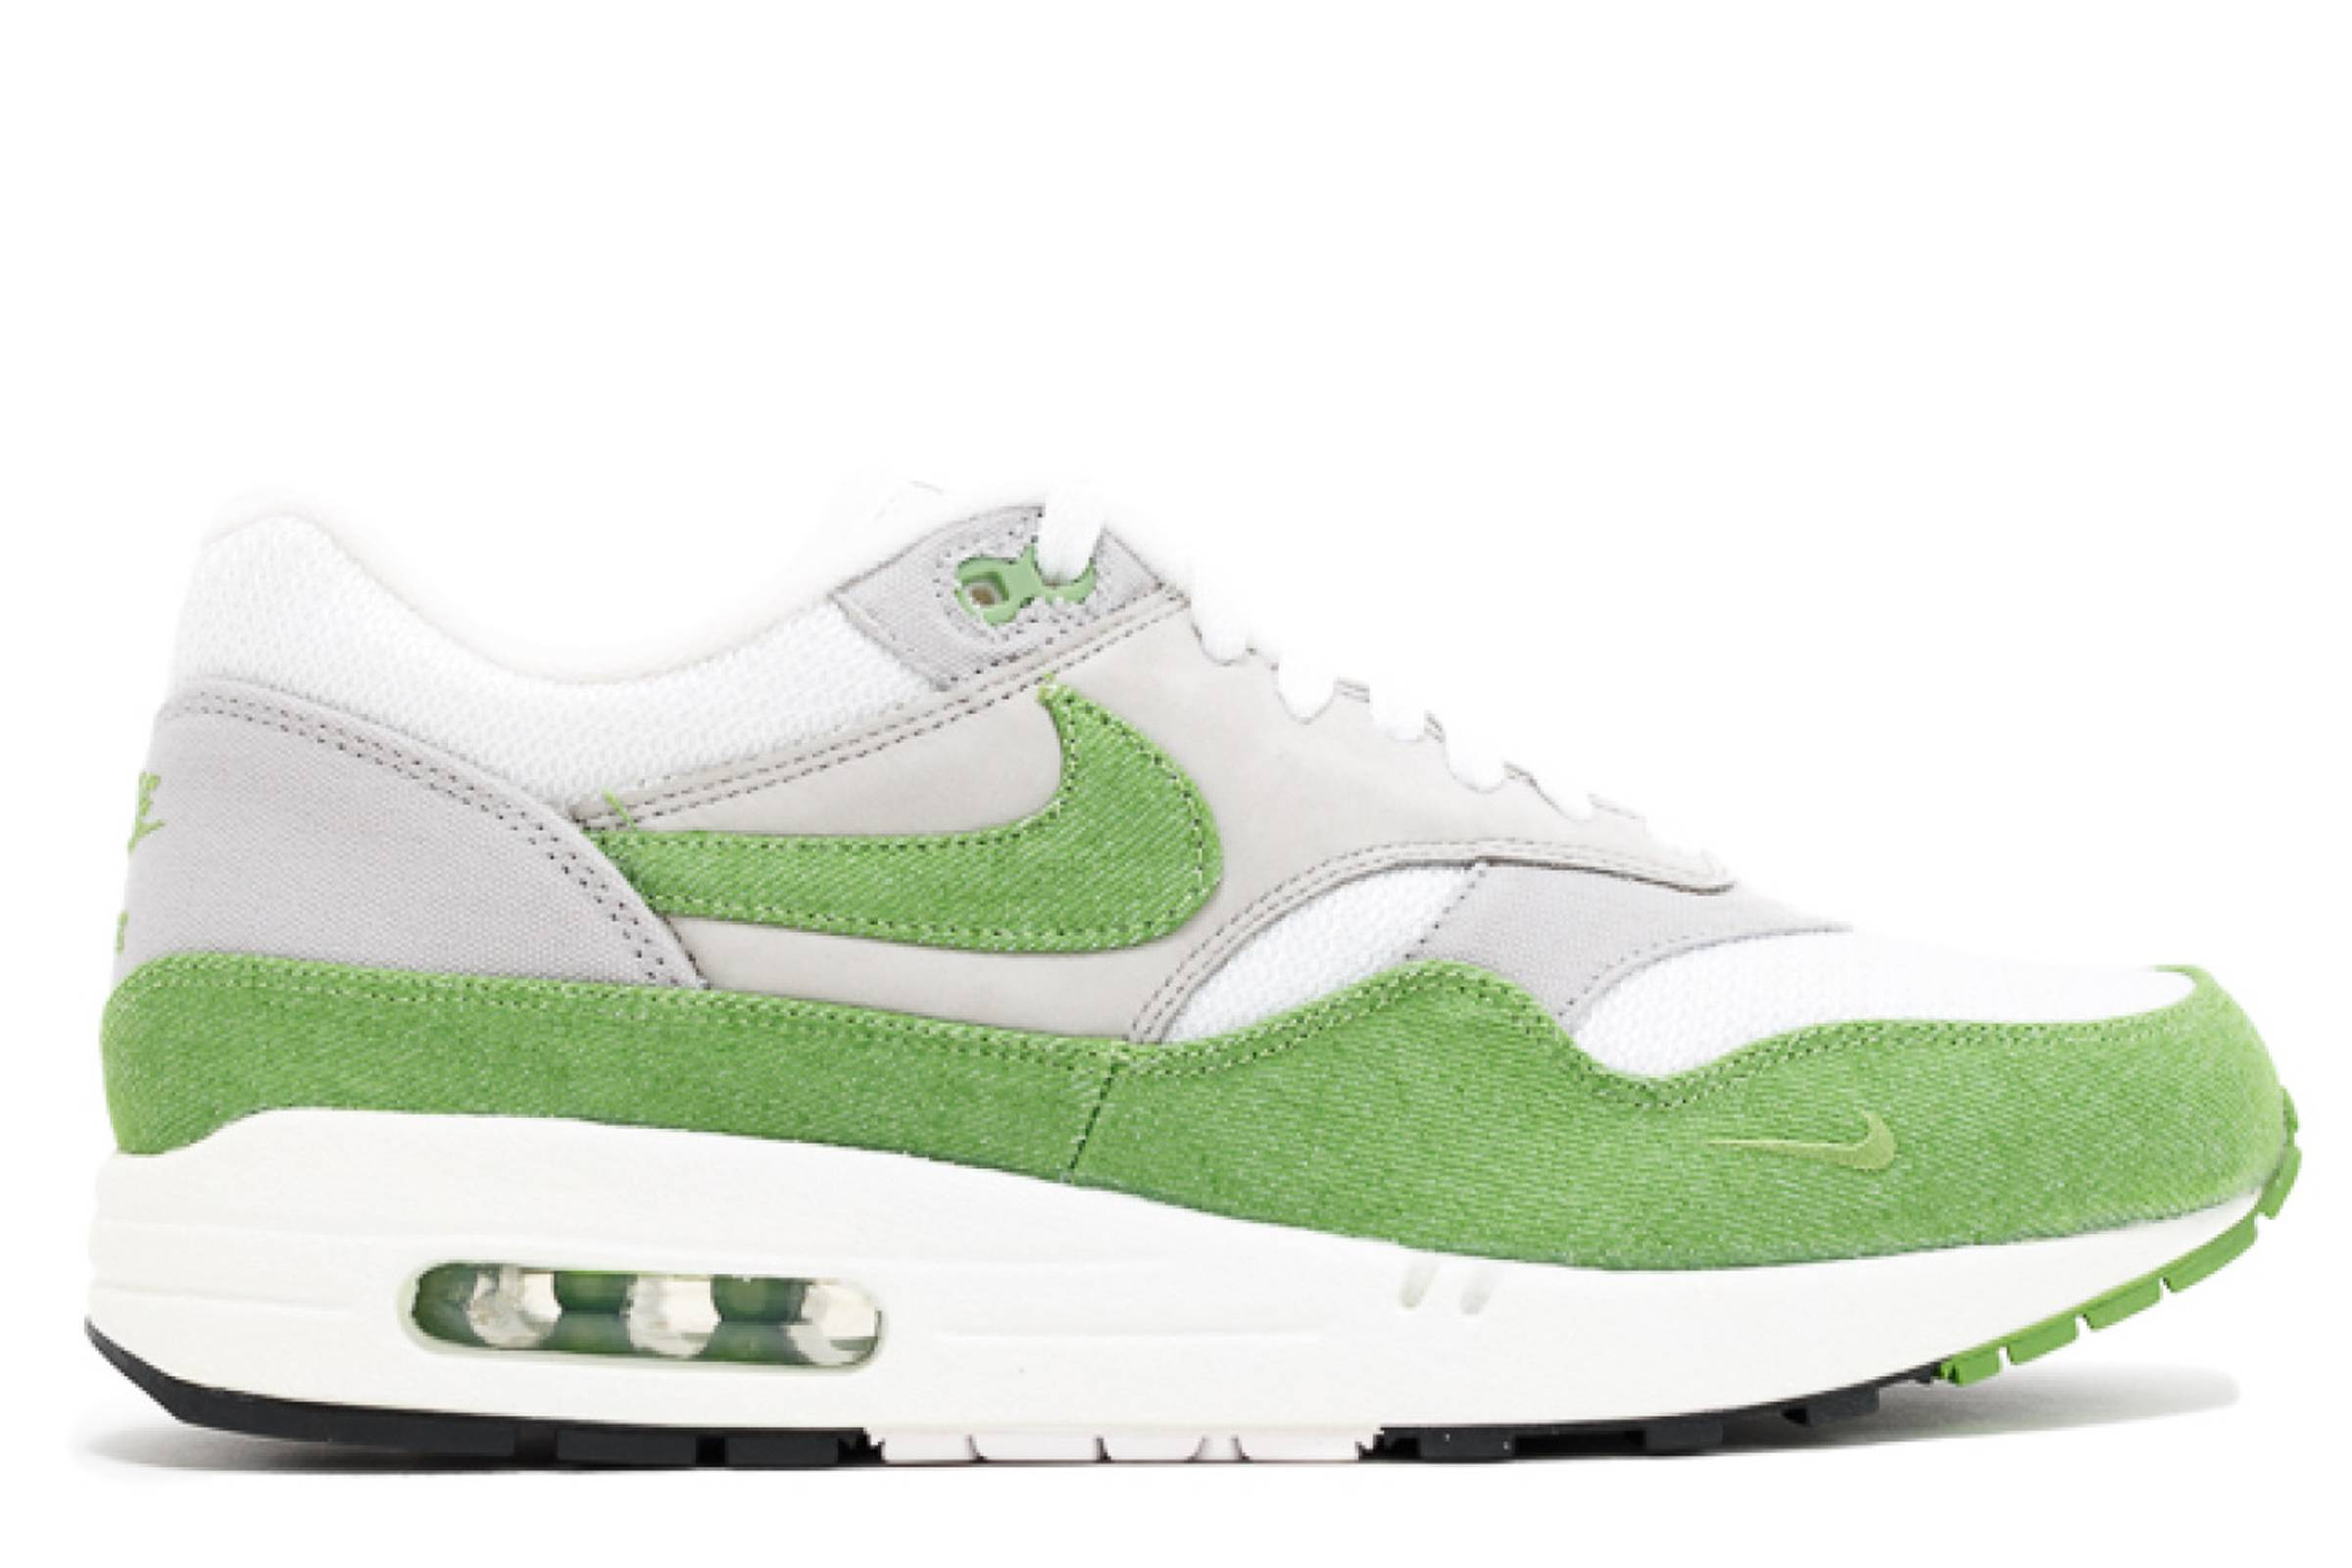 buy popular a2fa0 1c078 Nike x Patta Air Max 1 Chlorophyll (2009)